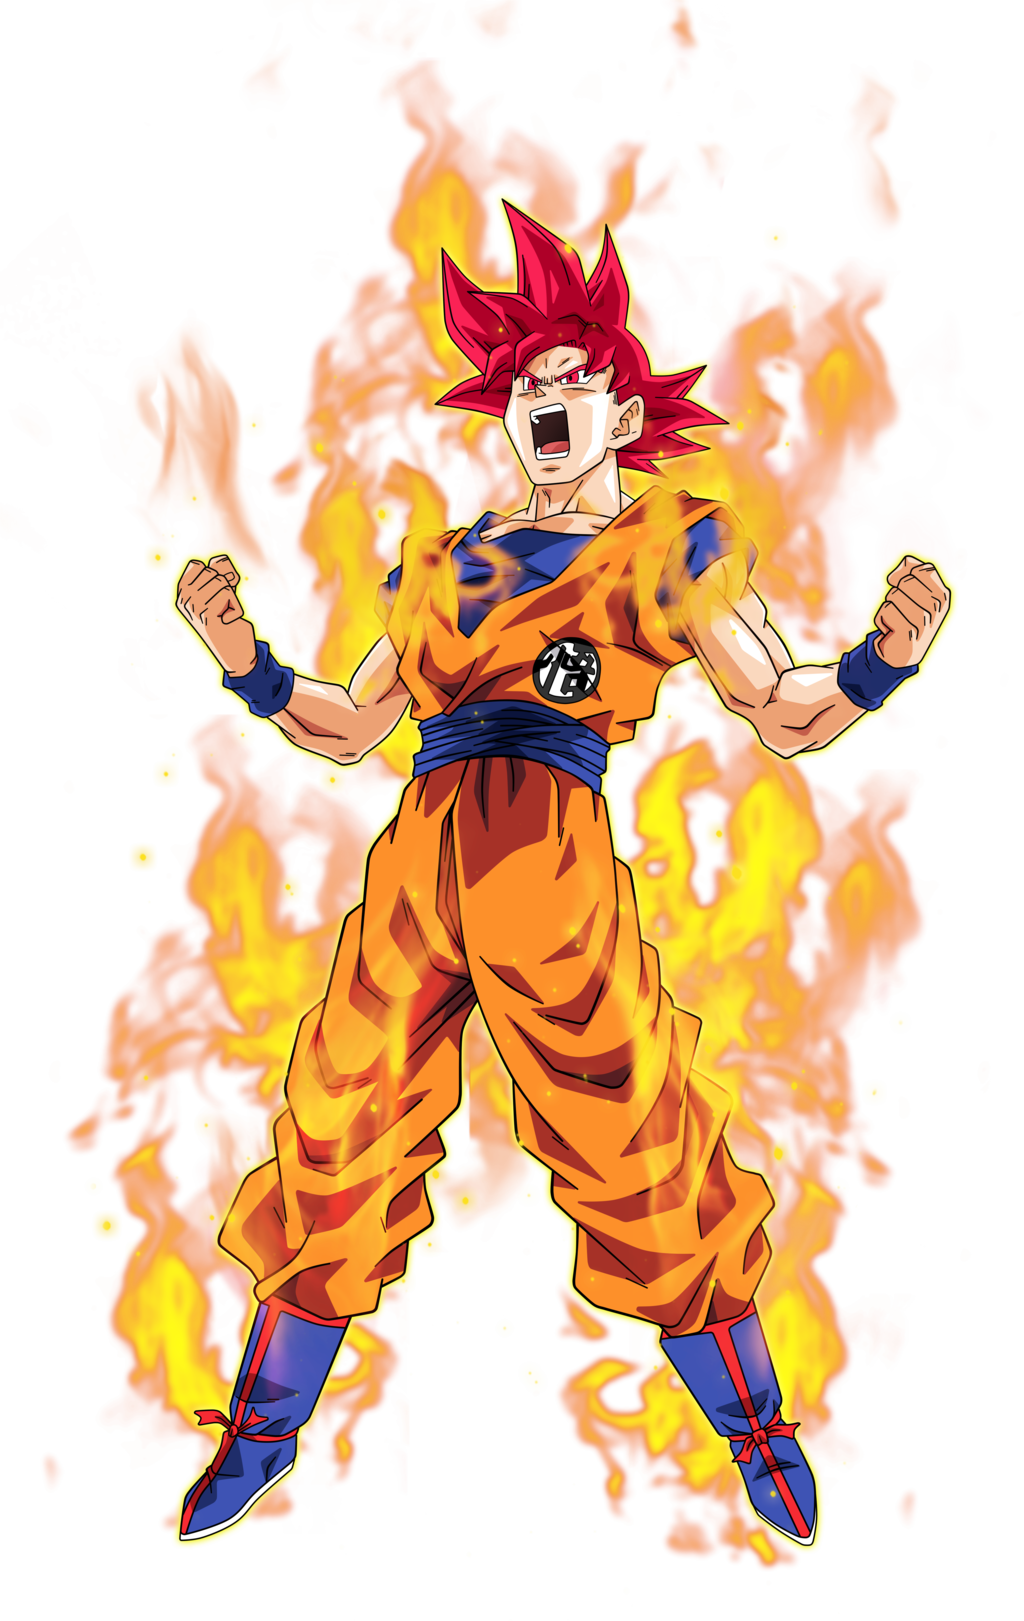 Goku super saiyan god super saiyan png. By bardocksonic on deviantart